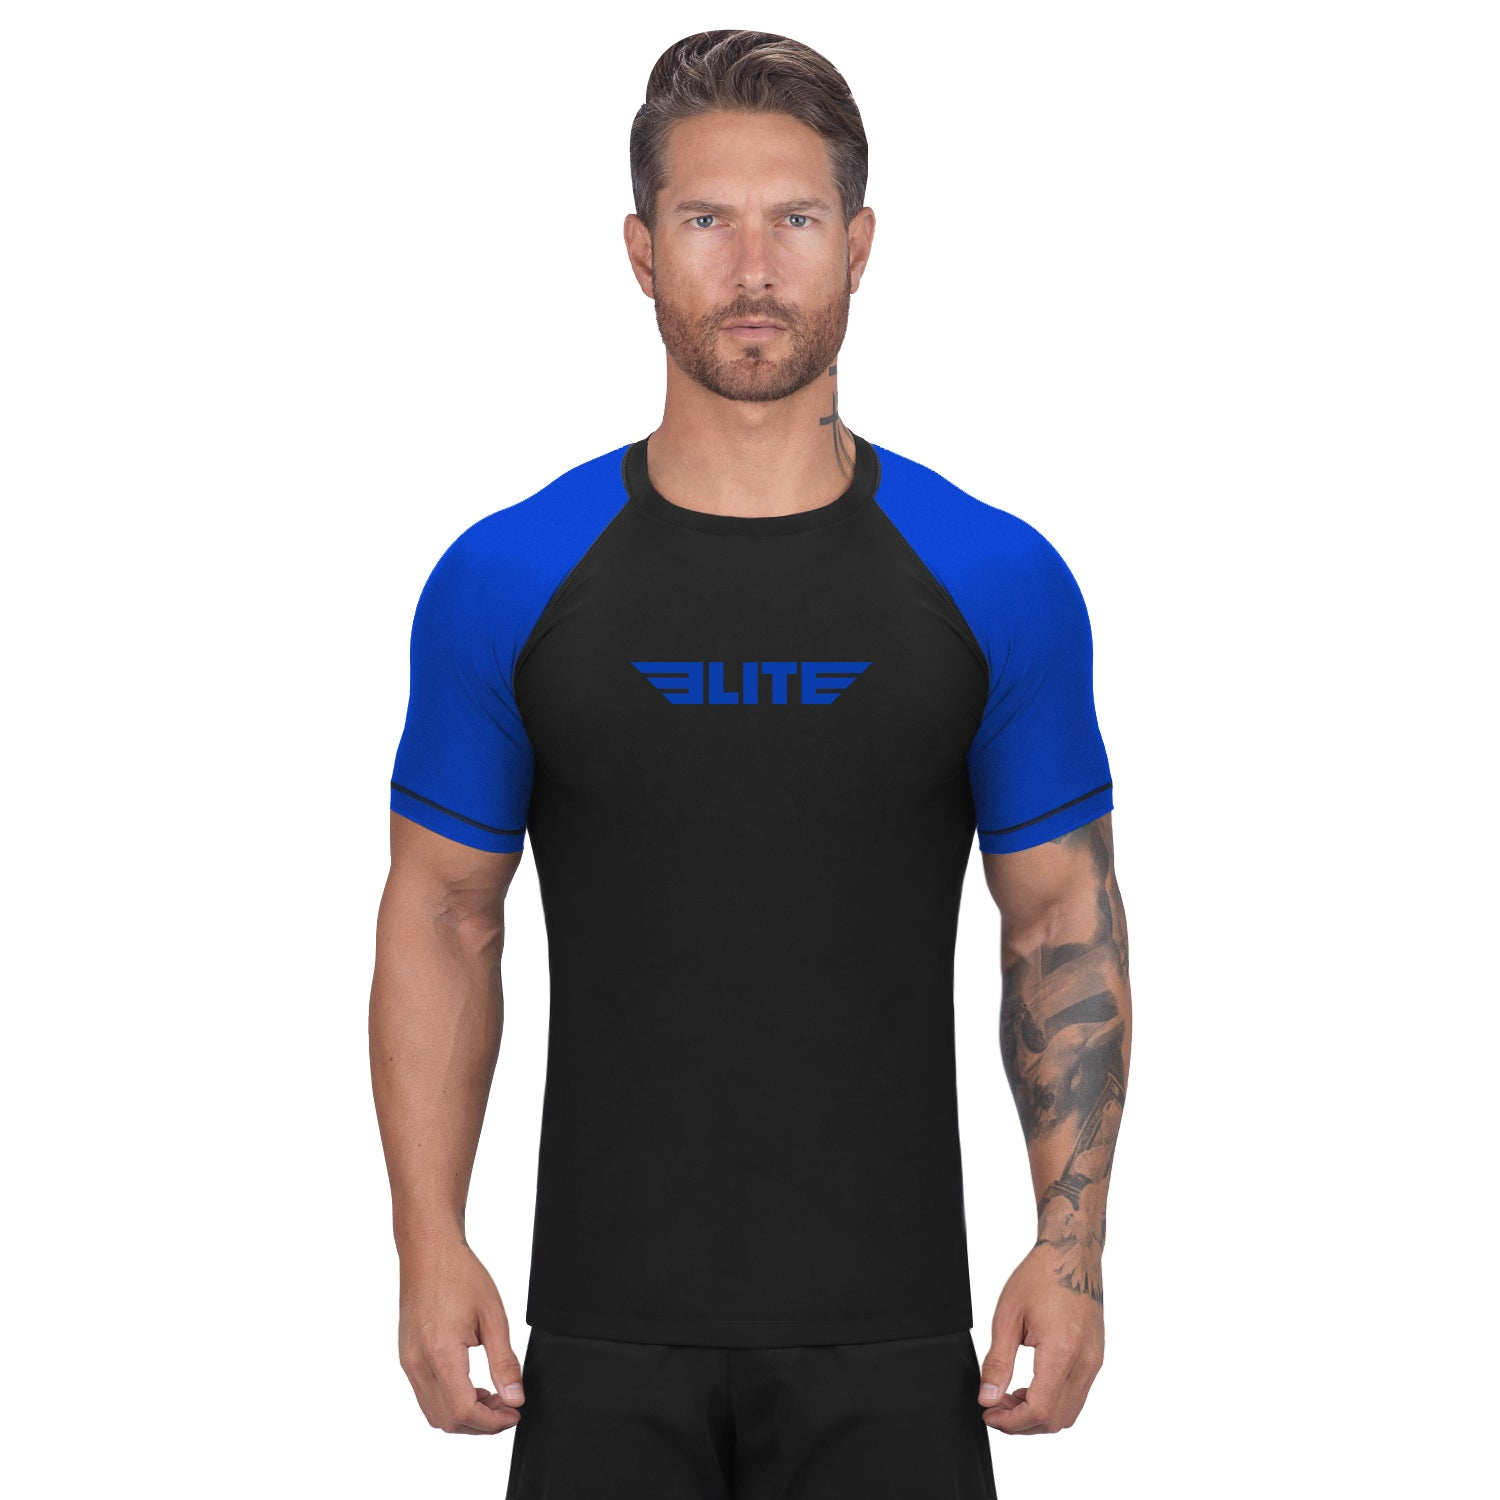 Elite Sports Standard Black/Blue Short Sleeve Wrestling Rash Guard